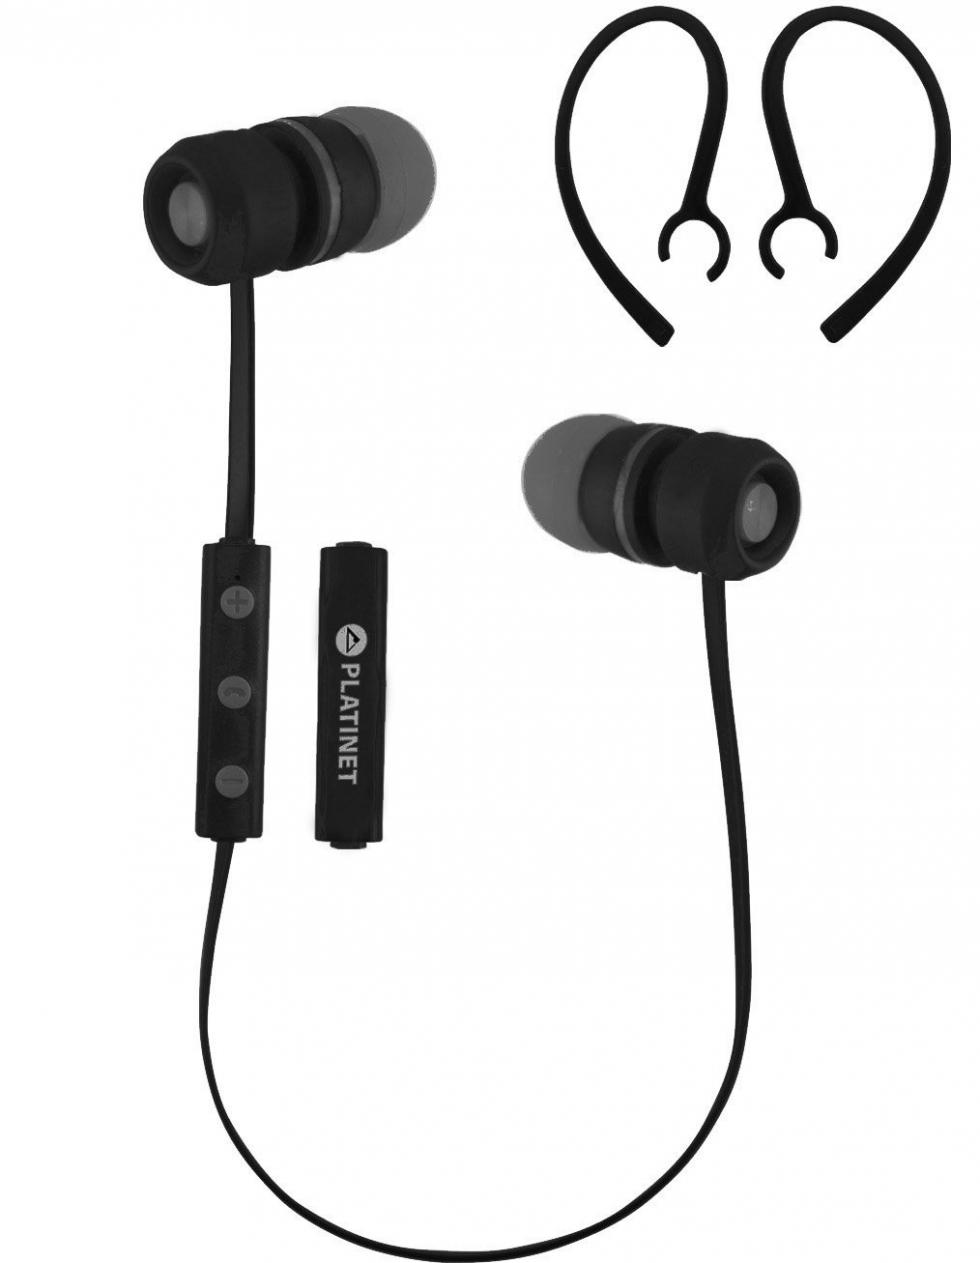 Auriculares Bluetooth Sport Platinet PM1064 + Micro